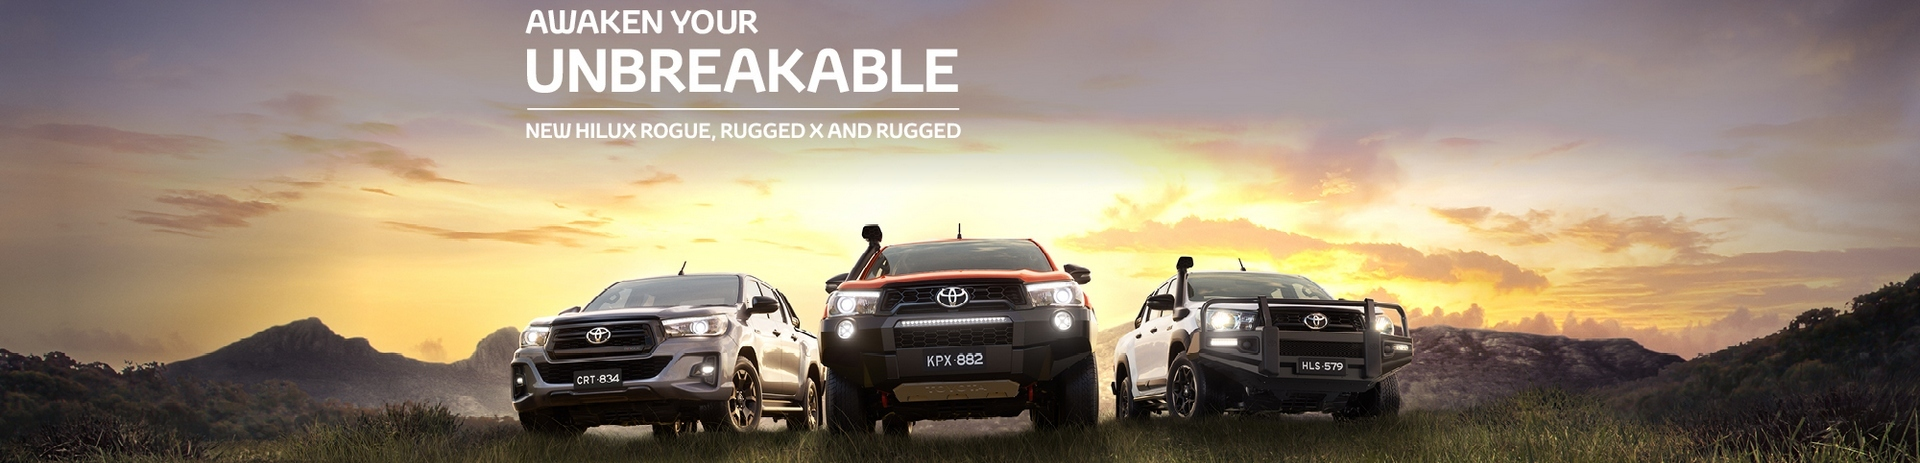 Toyota Hilux Rogue Rugged Rugged X Australia's Best